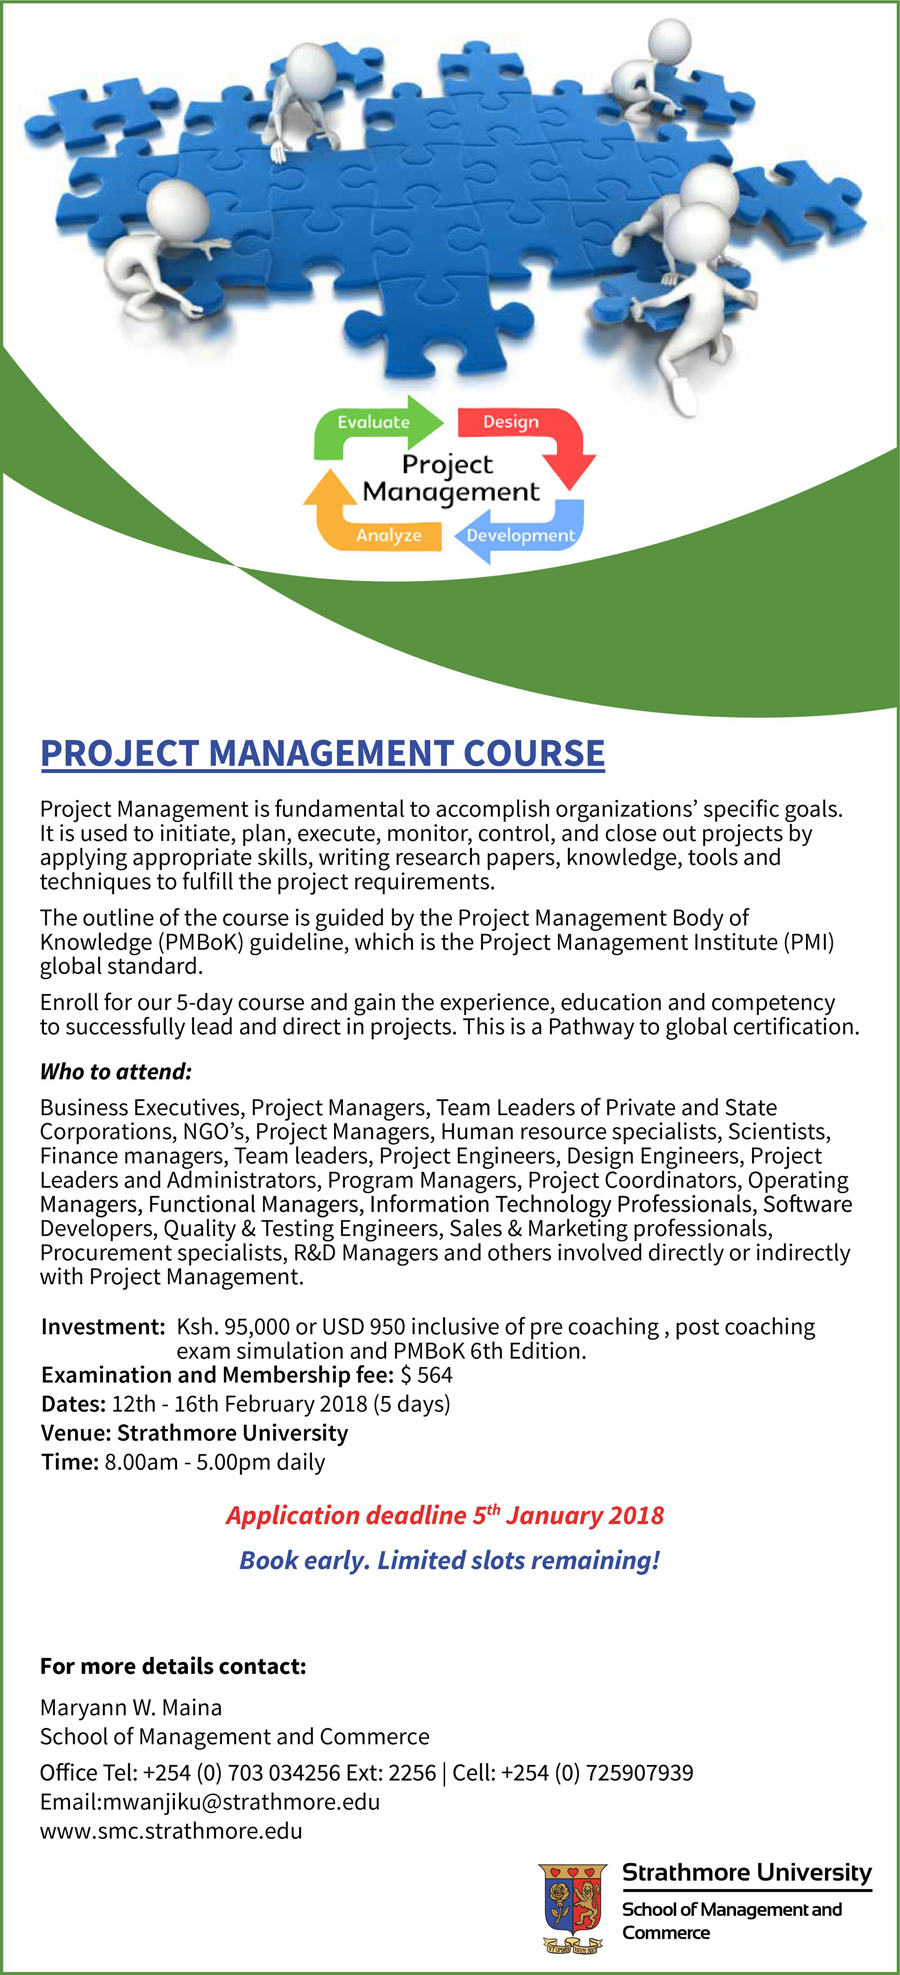 Project Management Course Strathmore University